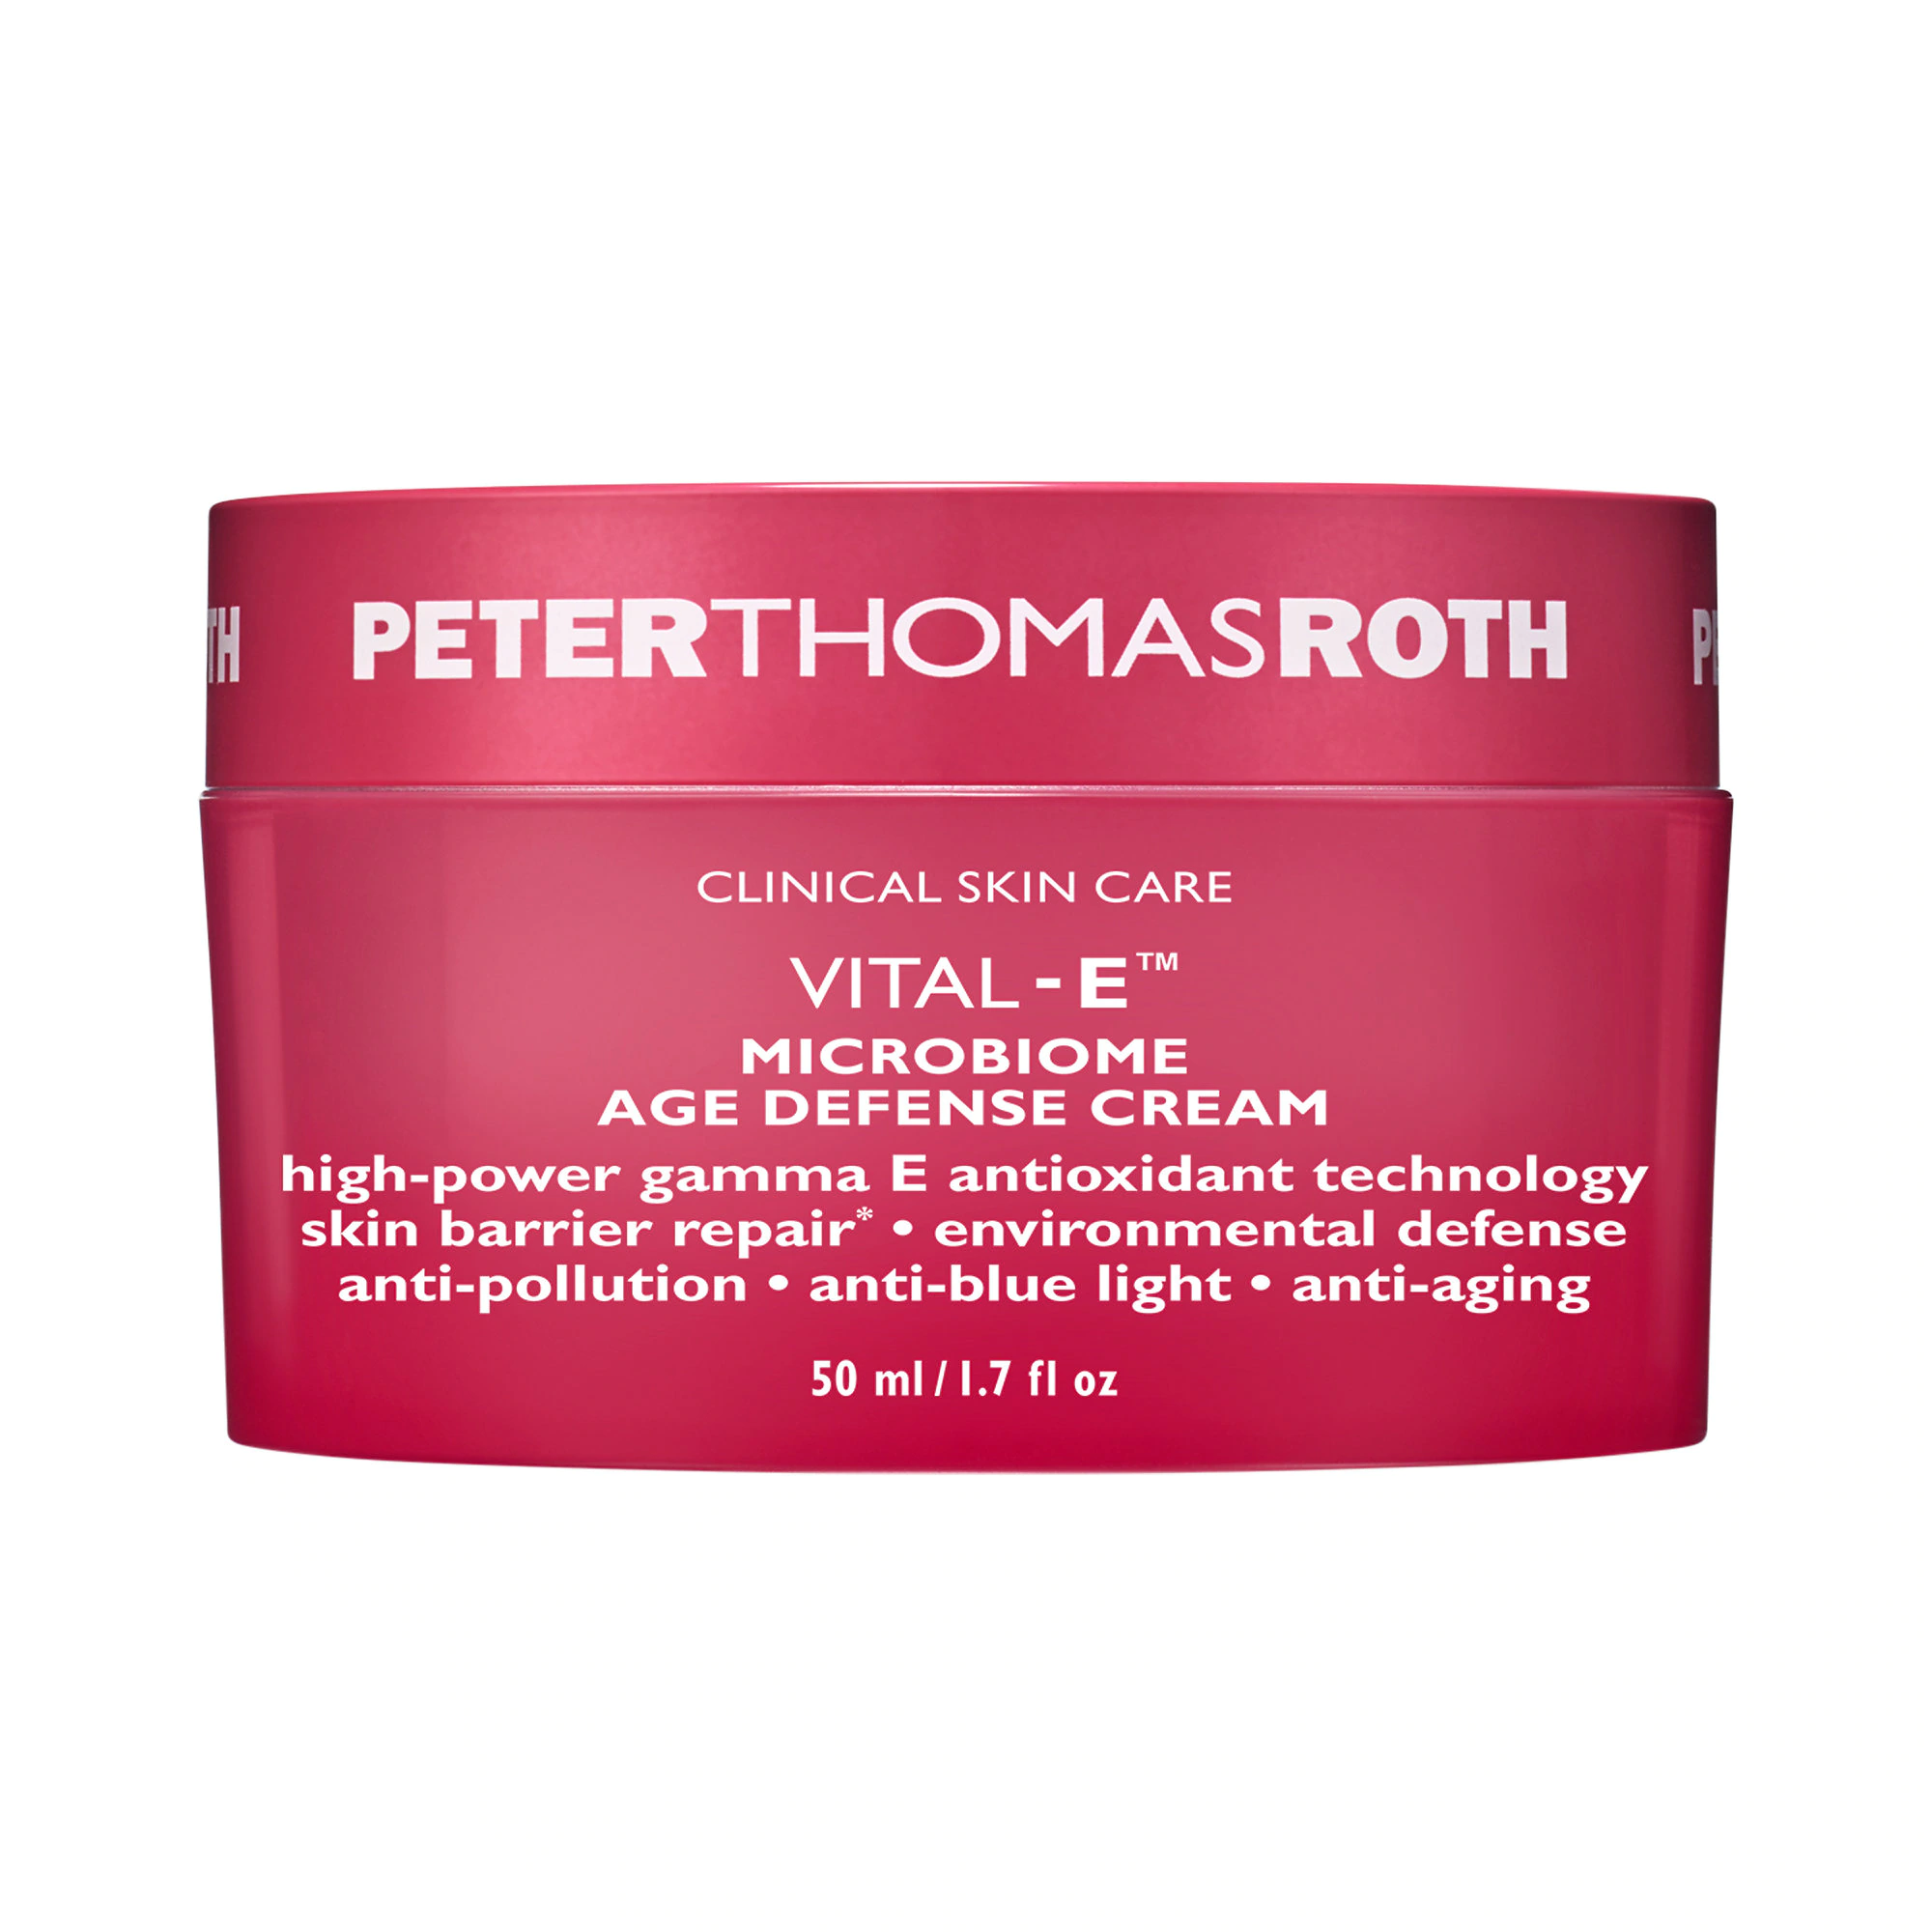 Peter Thomas Roth Vital-E™ Microbiome Age Defense Cream